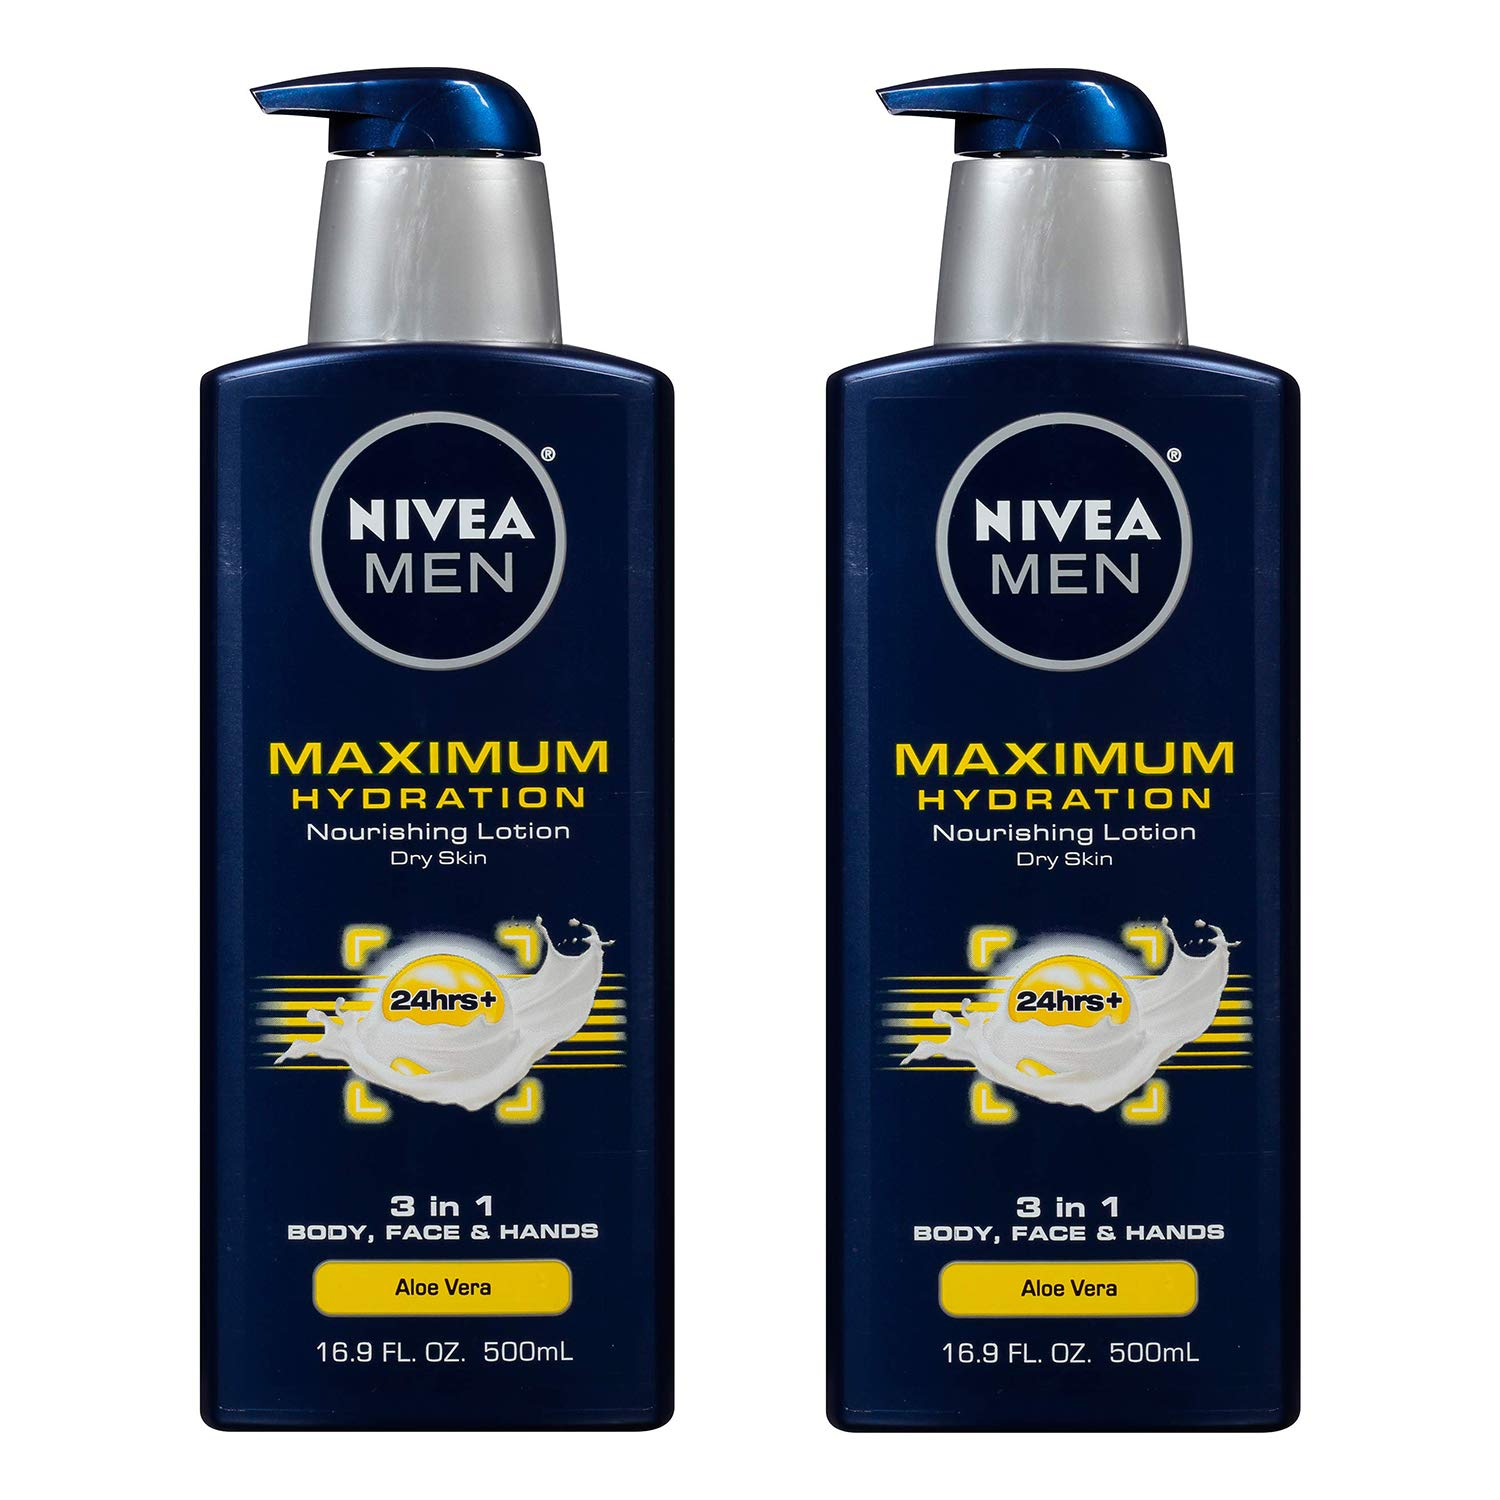 Nivea Men Maximum Hydration 3-in-1 Nourishing Lotion - Body, Face, Hands - 16.9 oz. Pump Bottle - 2 Pack: Sports & Outdoors